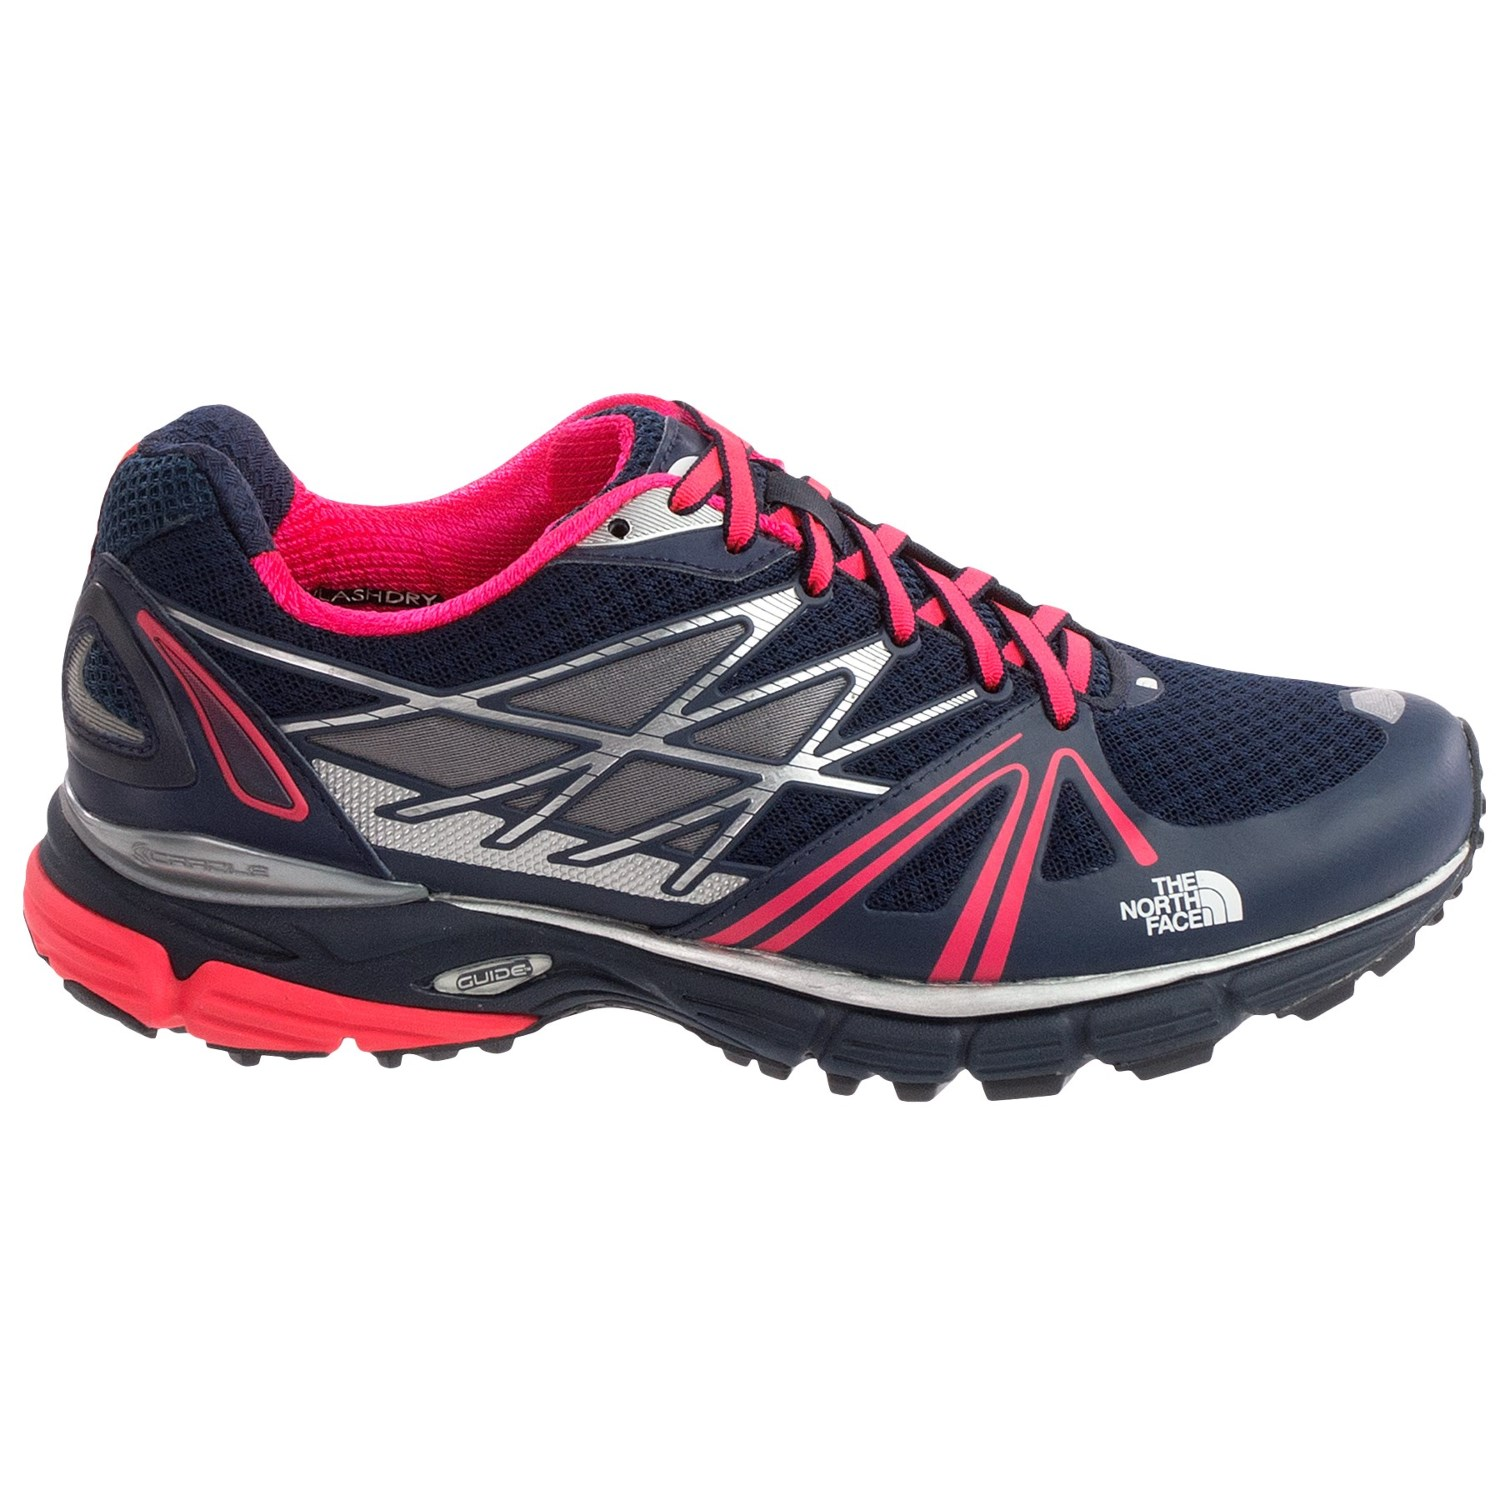 North Face Trail Running Shoes Sale